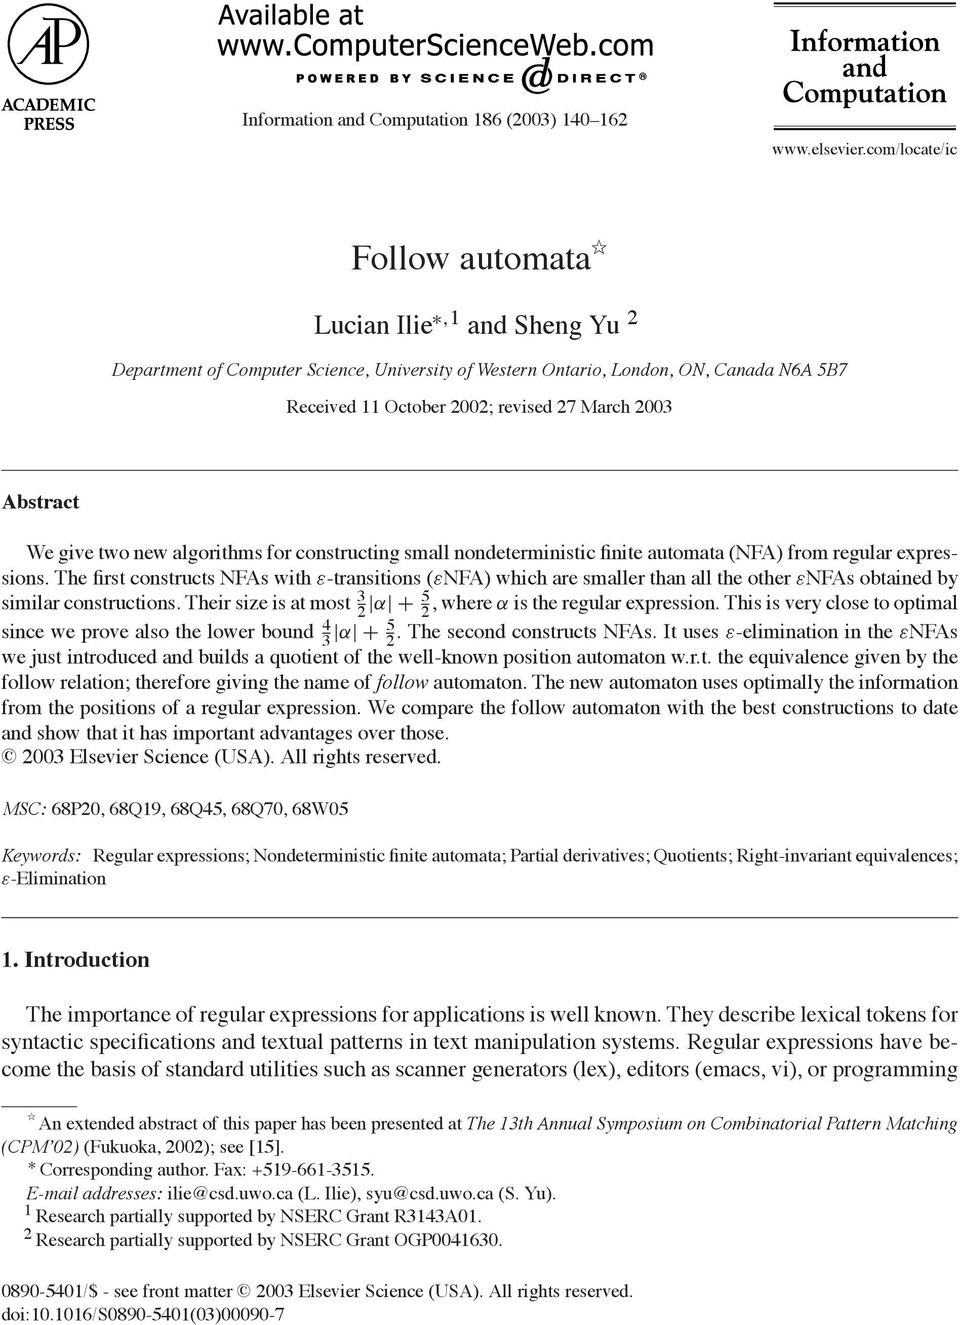 Abstract We give two new algorithms for constructing small nondeterministic finite automata (NFA) from regular expressions.